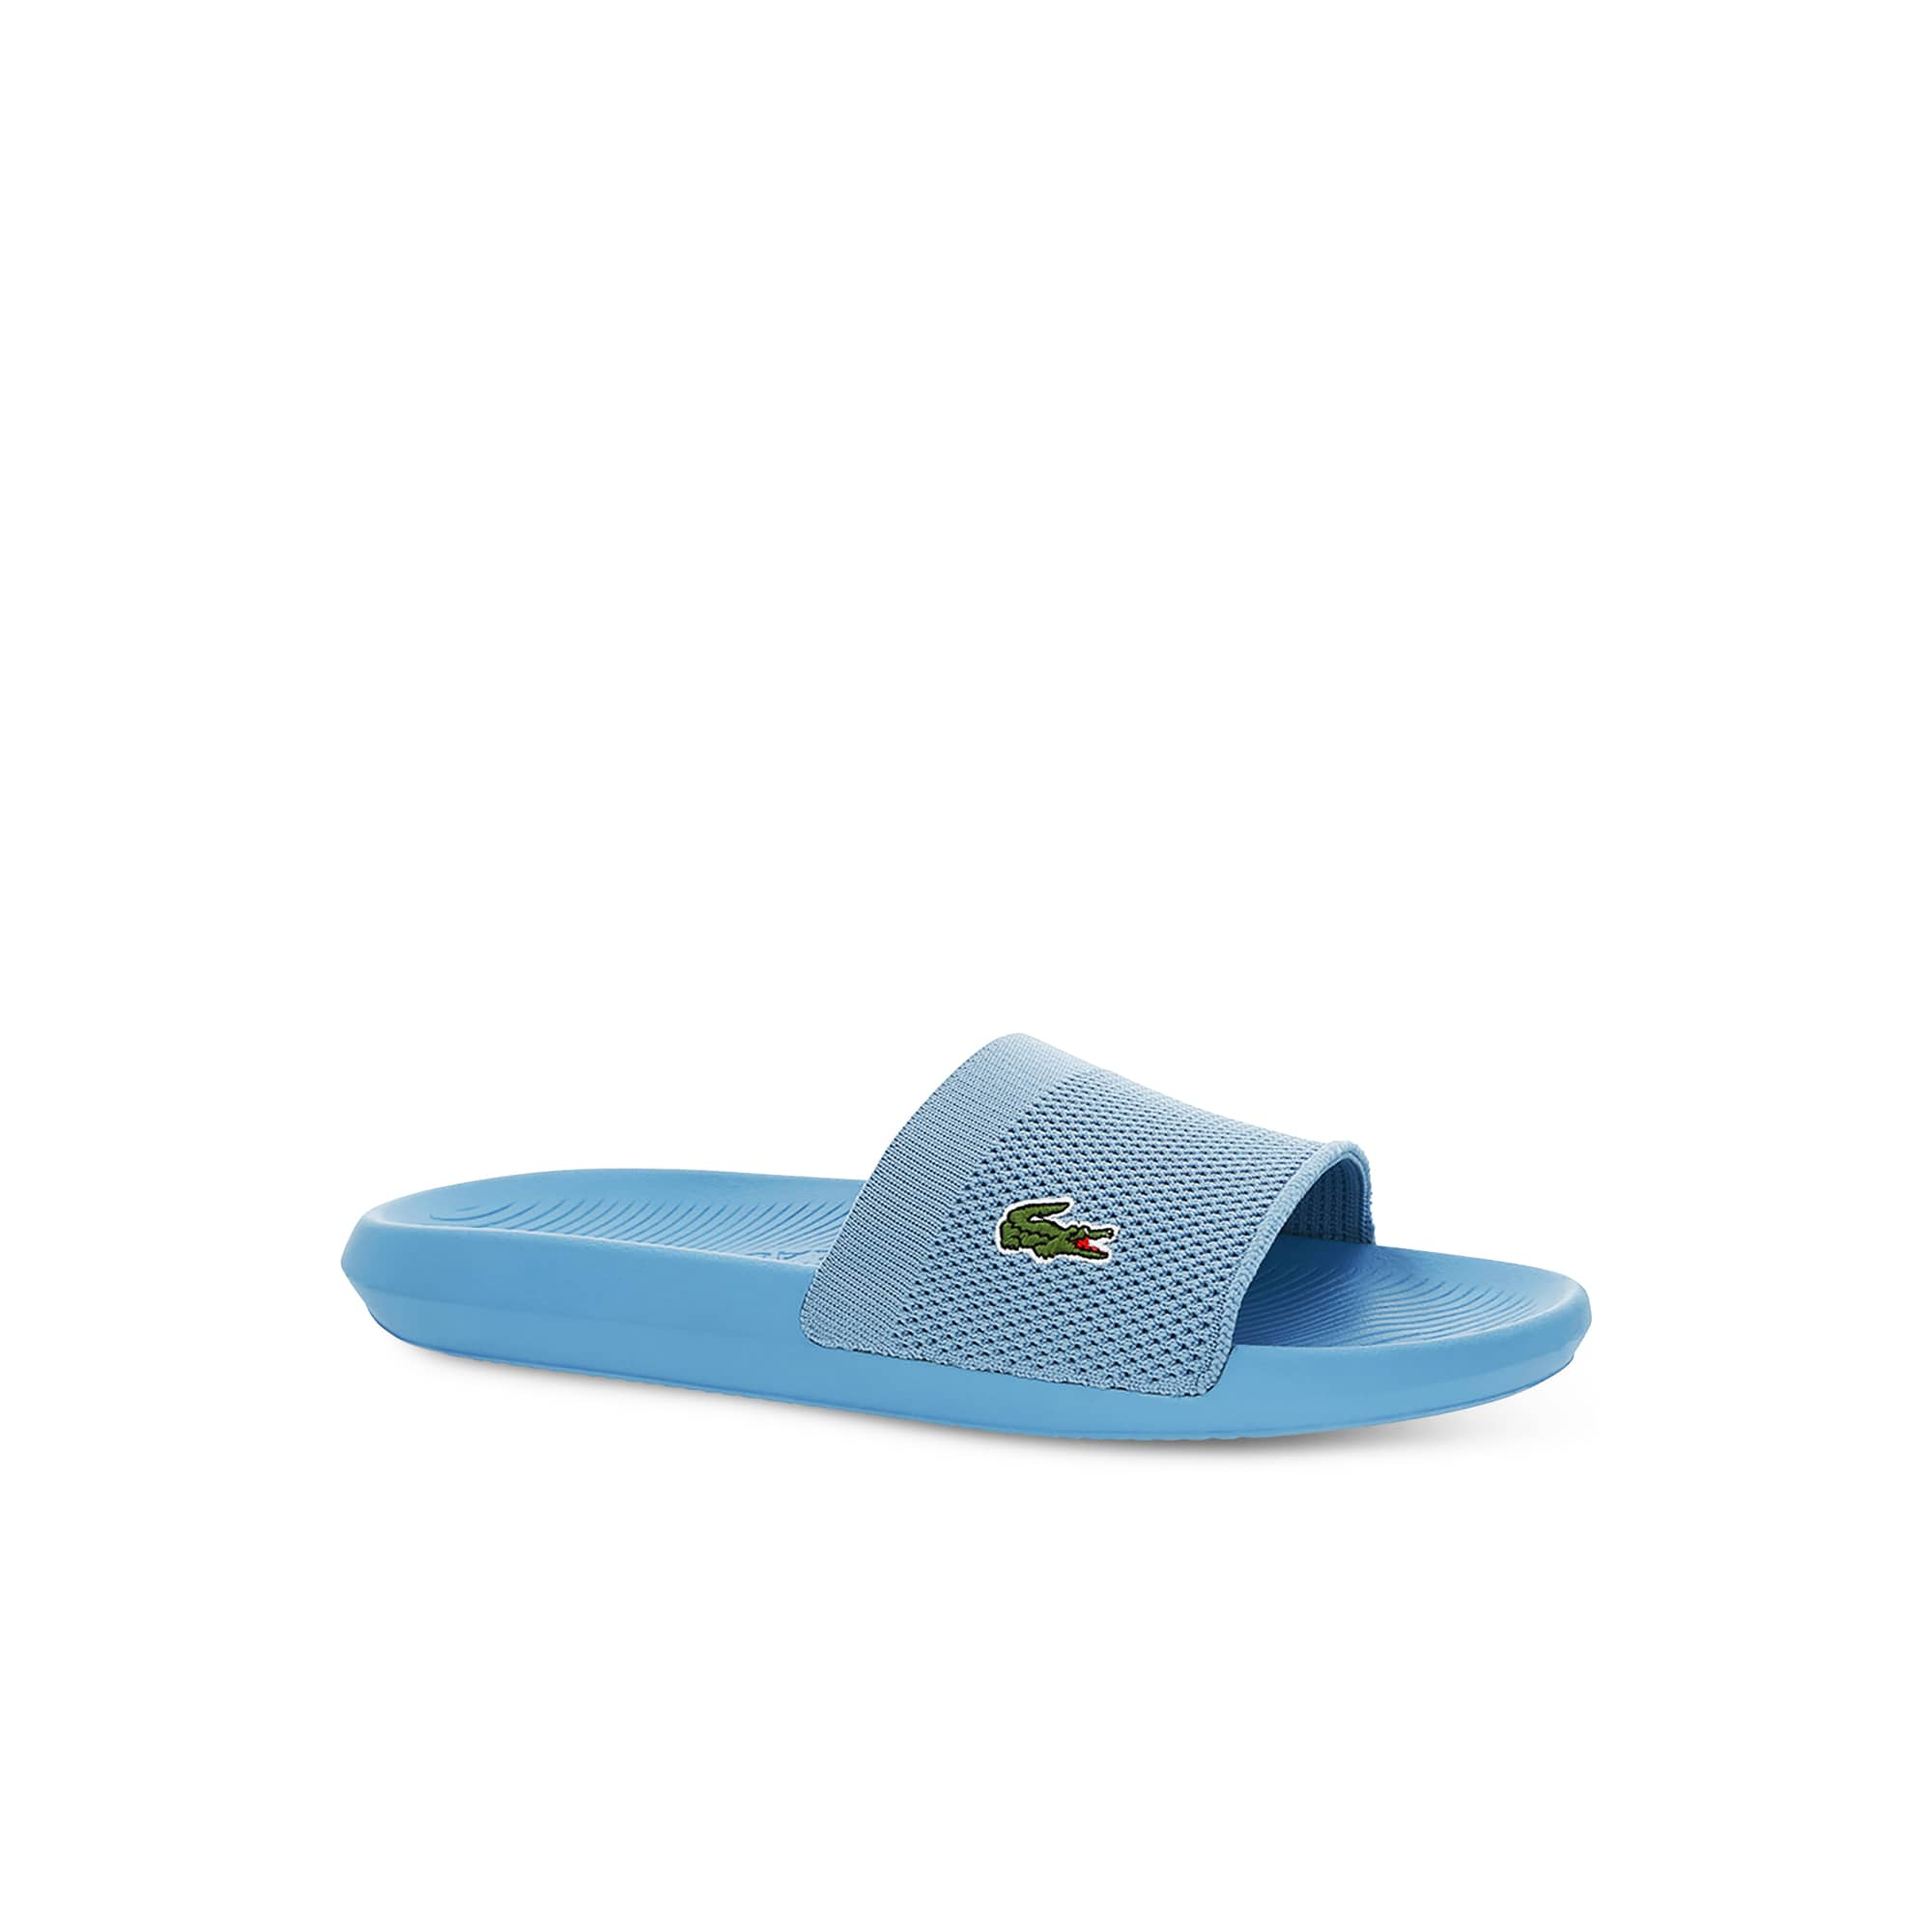 Lacoste  Men's Plain Textile Slides